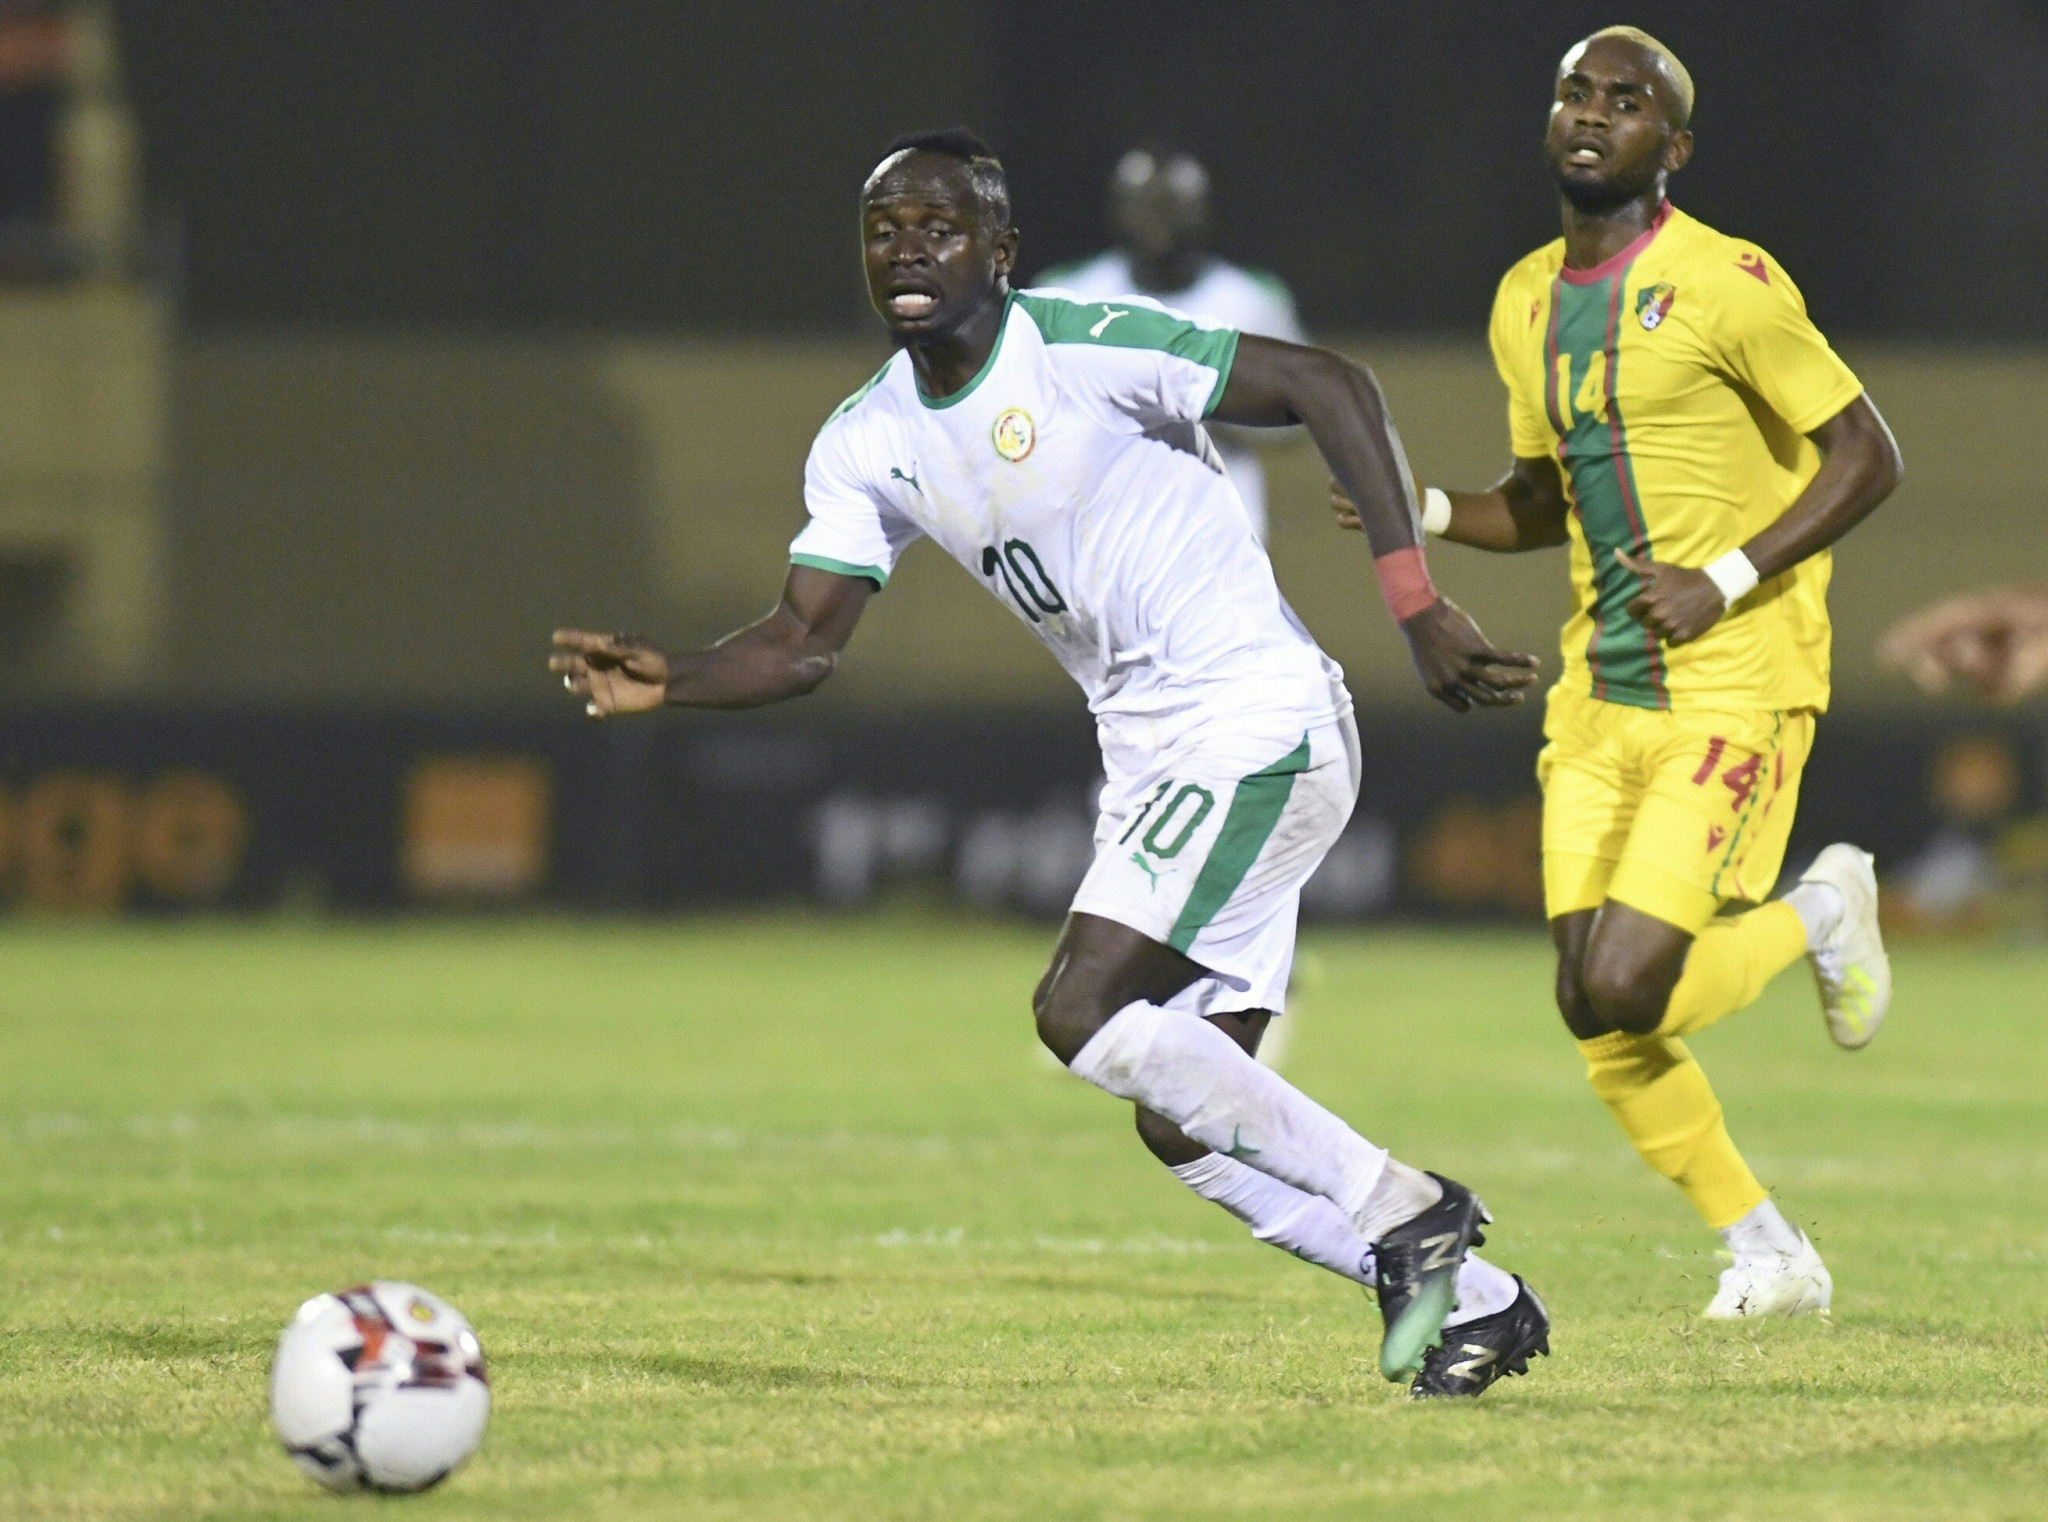 Sadio Mané in action for Senegal, who were forced to call off their home friendly against Mauritania due to coronavirus concerns last month ©Getty Images